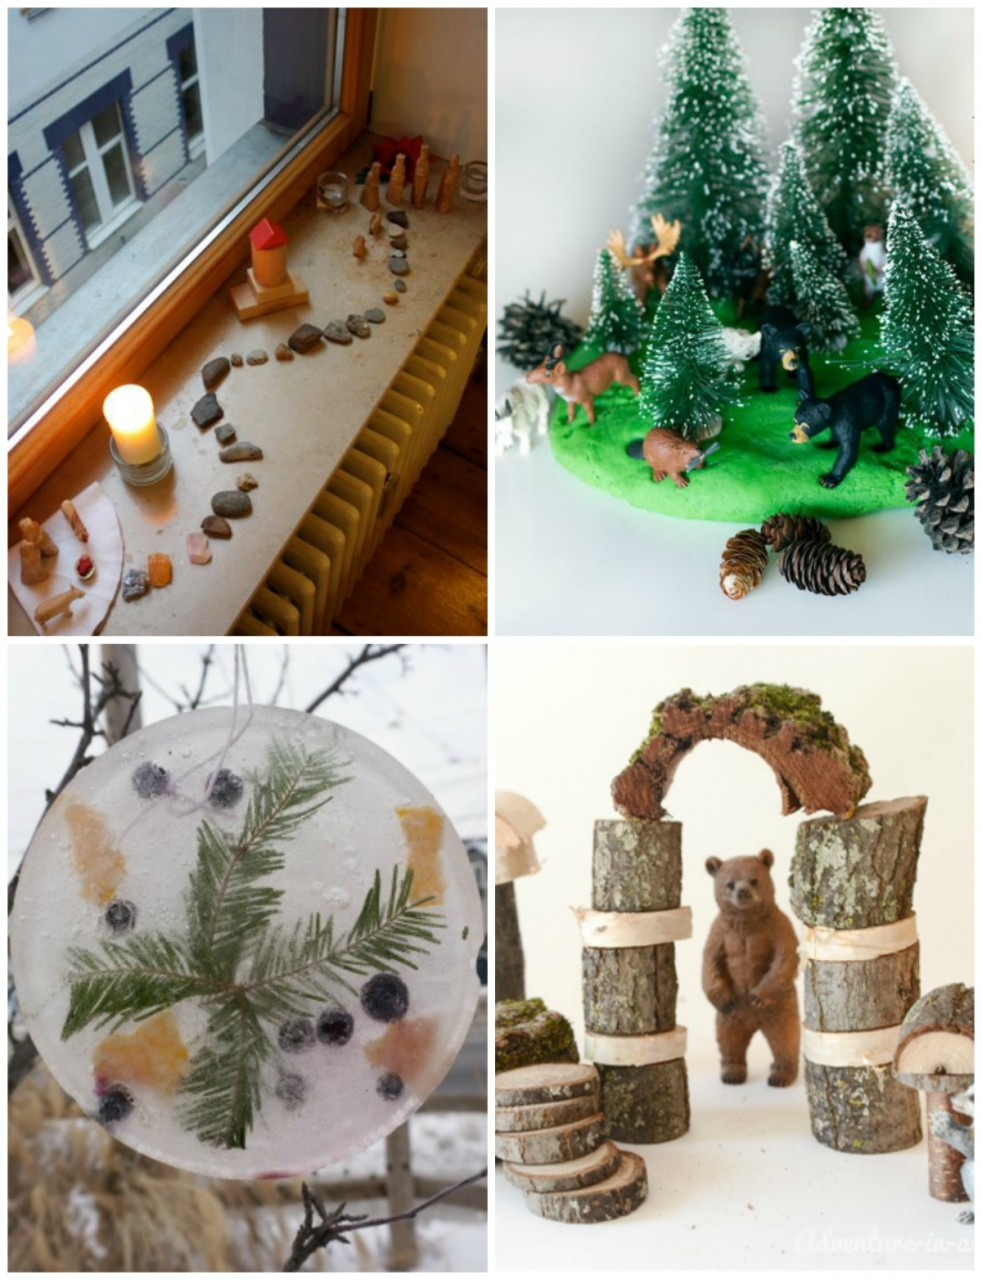 25 Countdown to Christmas and Advent Calendar Ideas